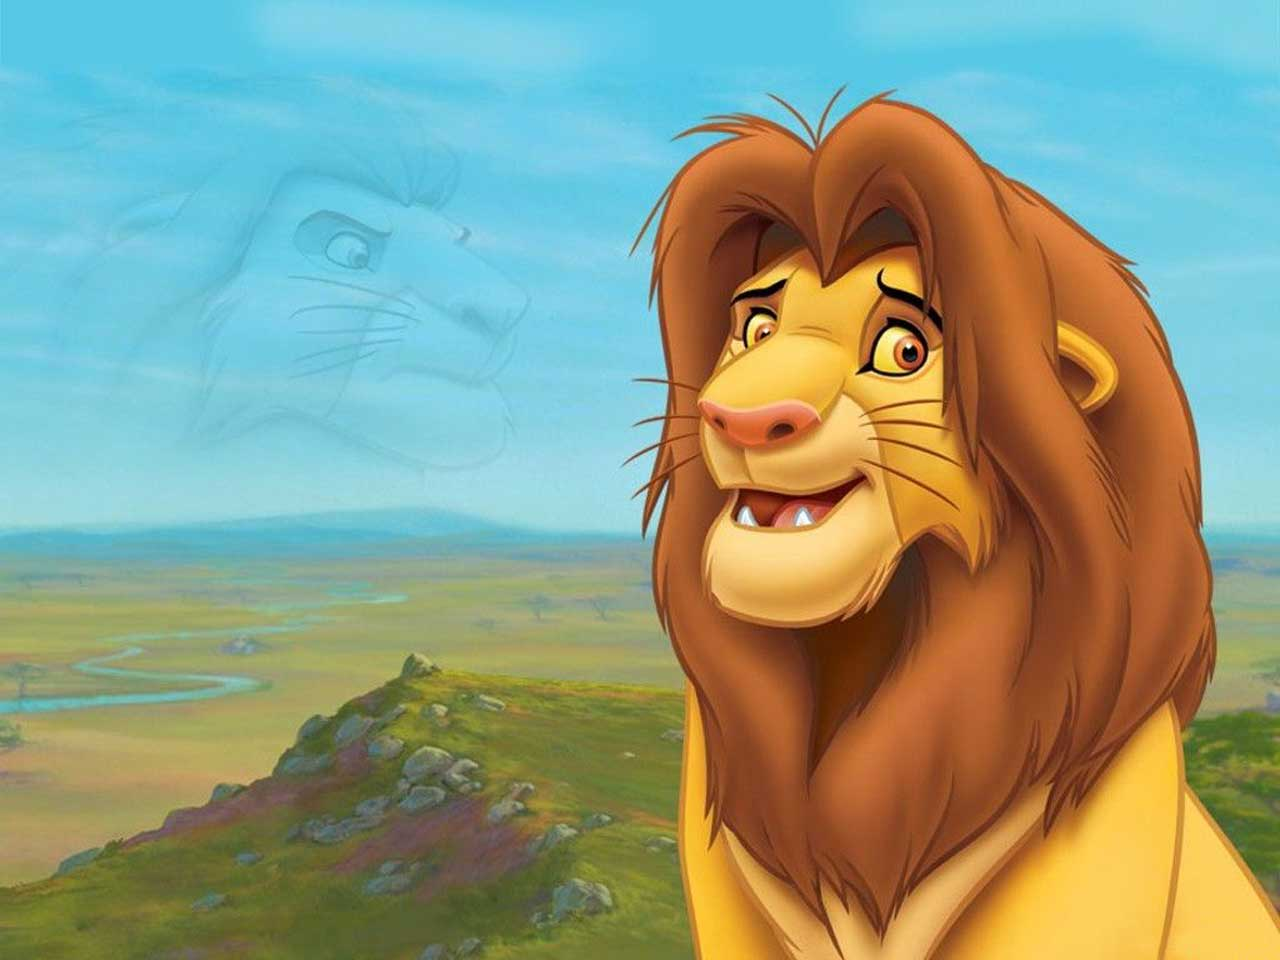 simba lion king wallpaper image simba lion king wallpaper wallpaper 1280x960